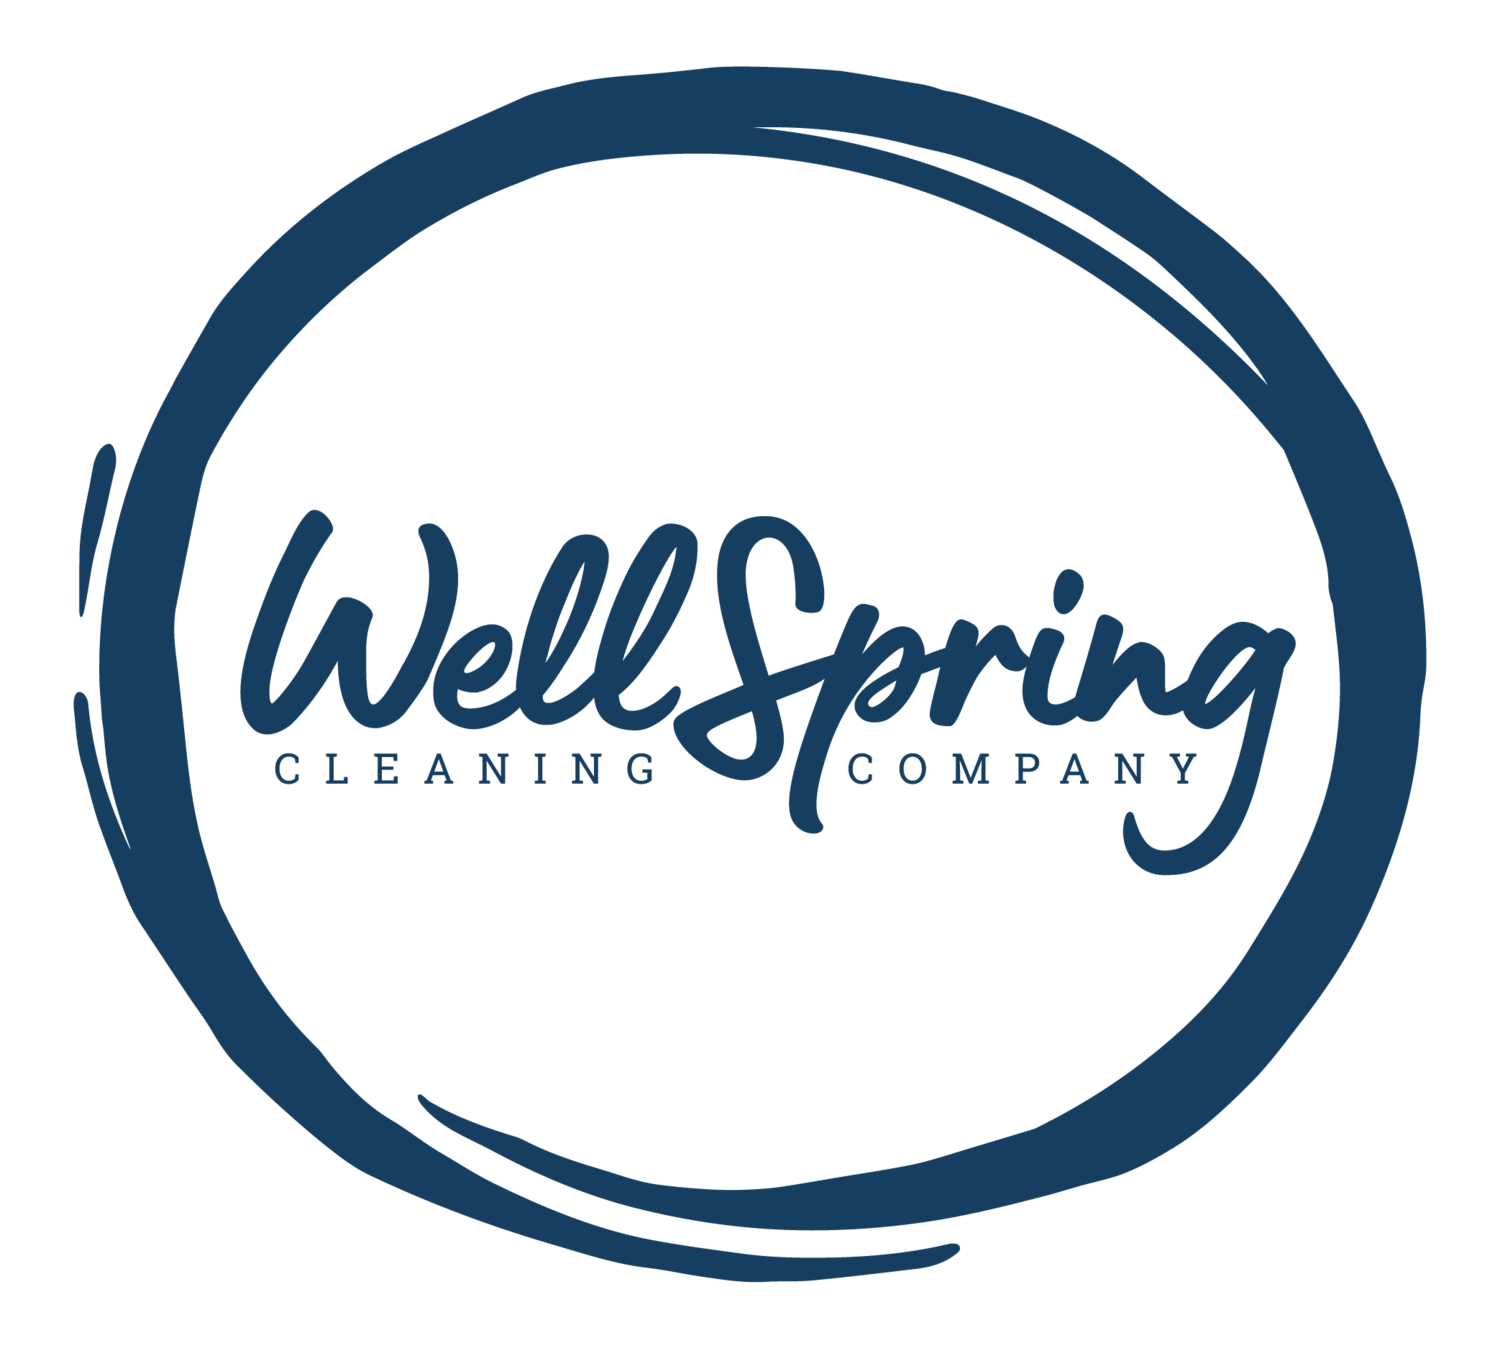 Wellspring cleaning co.